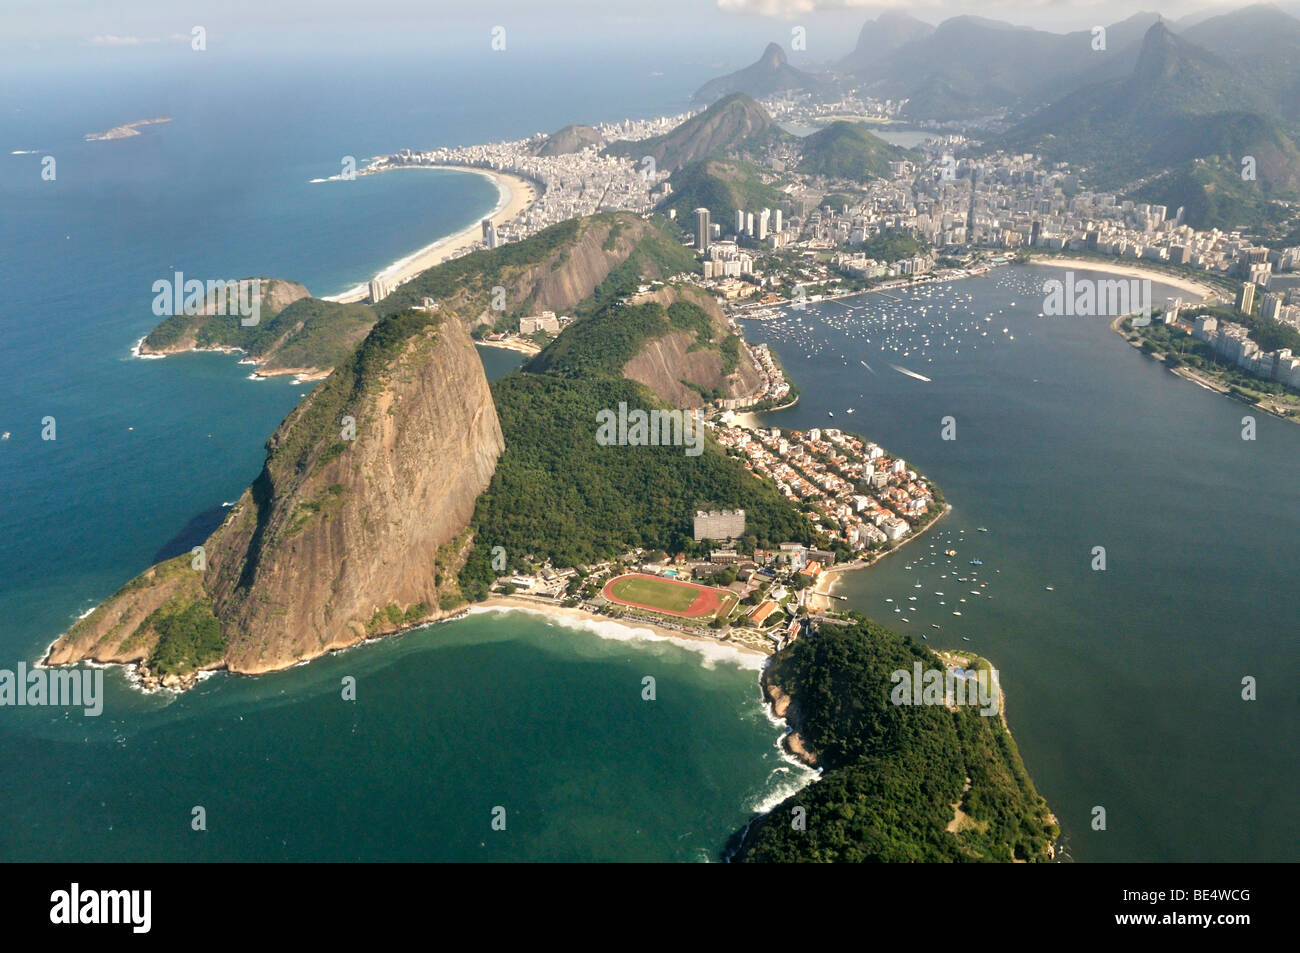 Aerial view of Rio de Janeiro and the Sugar Loaf, Brazil, South America - Stock Image